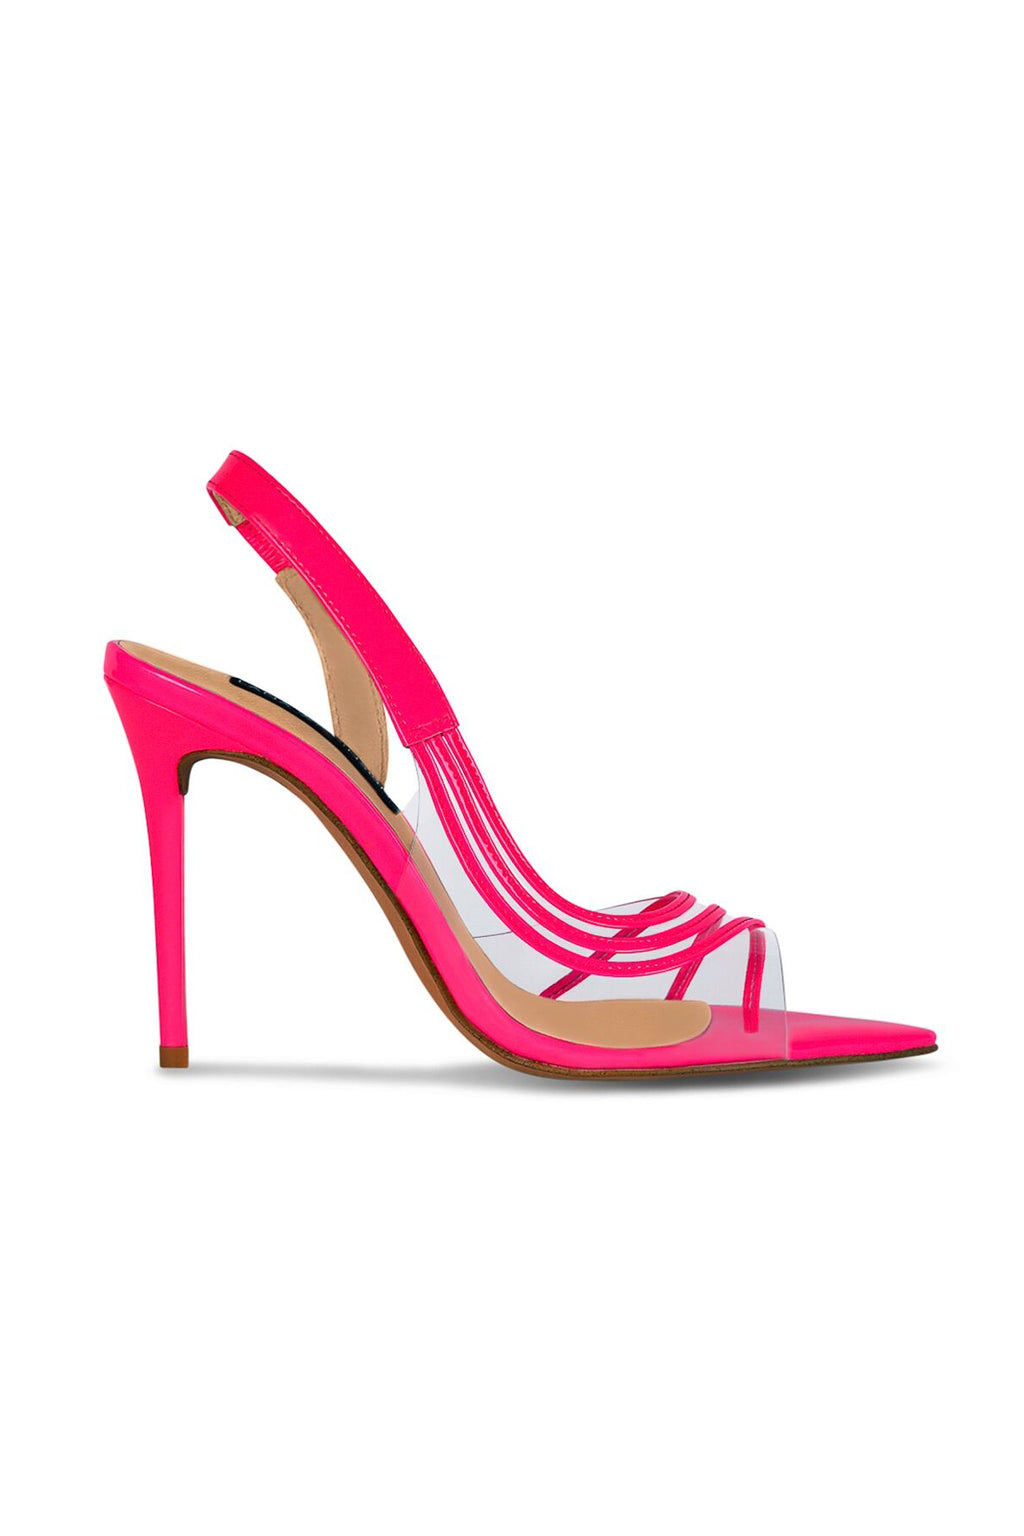 Lana Wilkinson Rachel in Hot Pink Patent